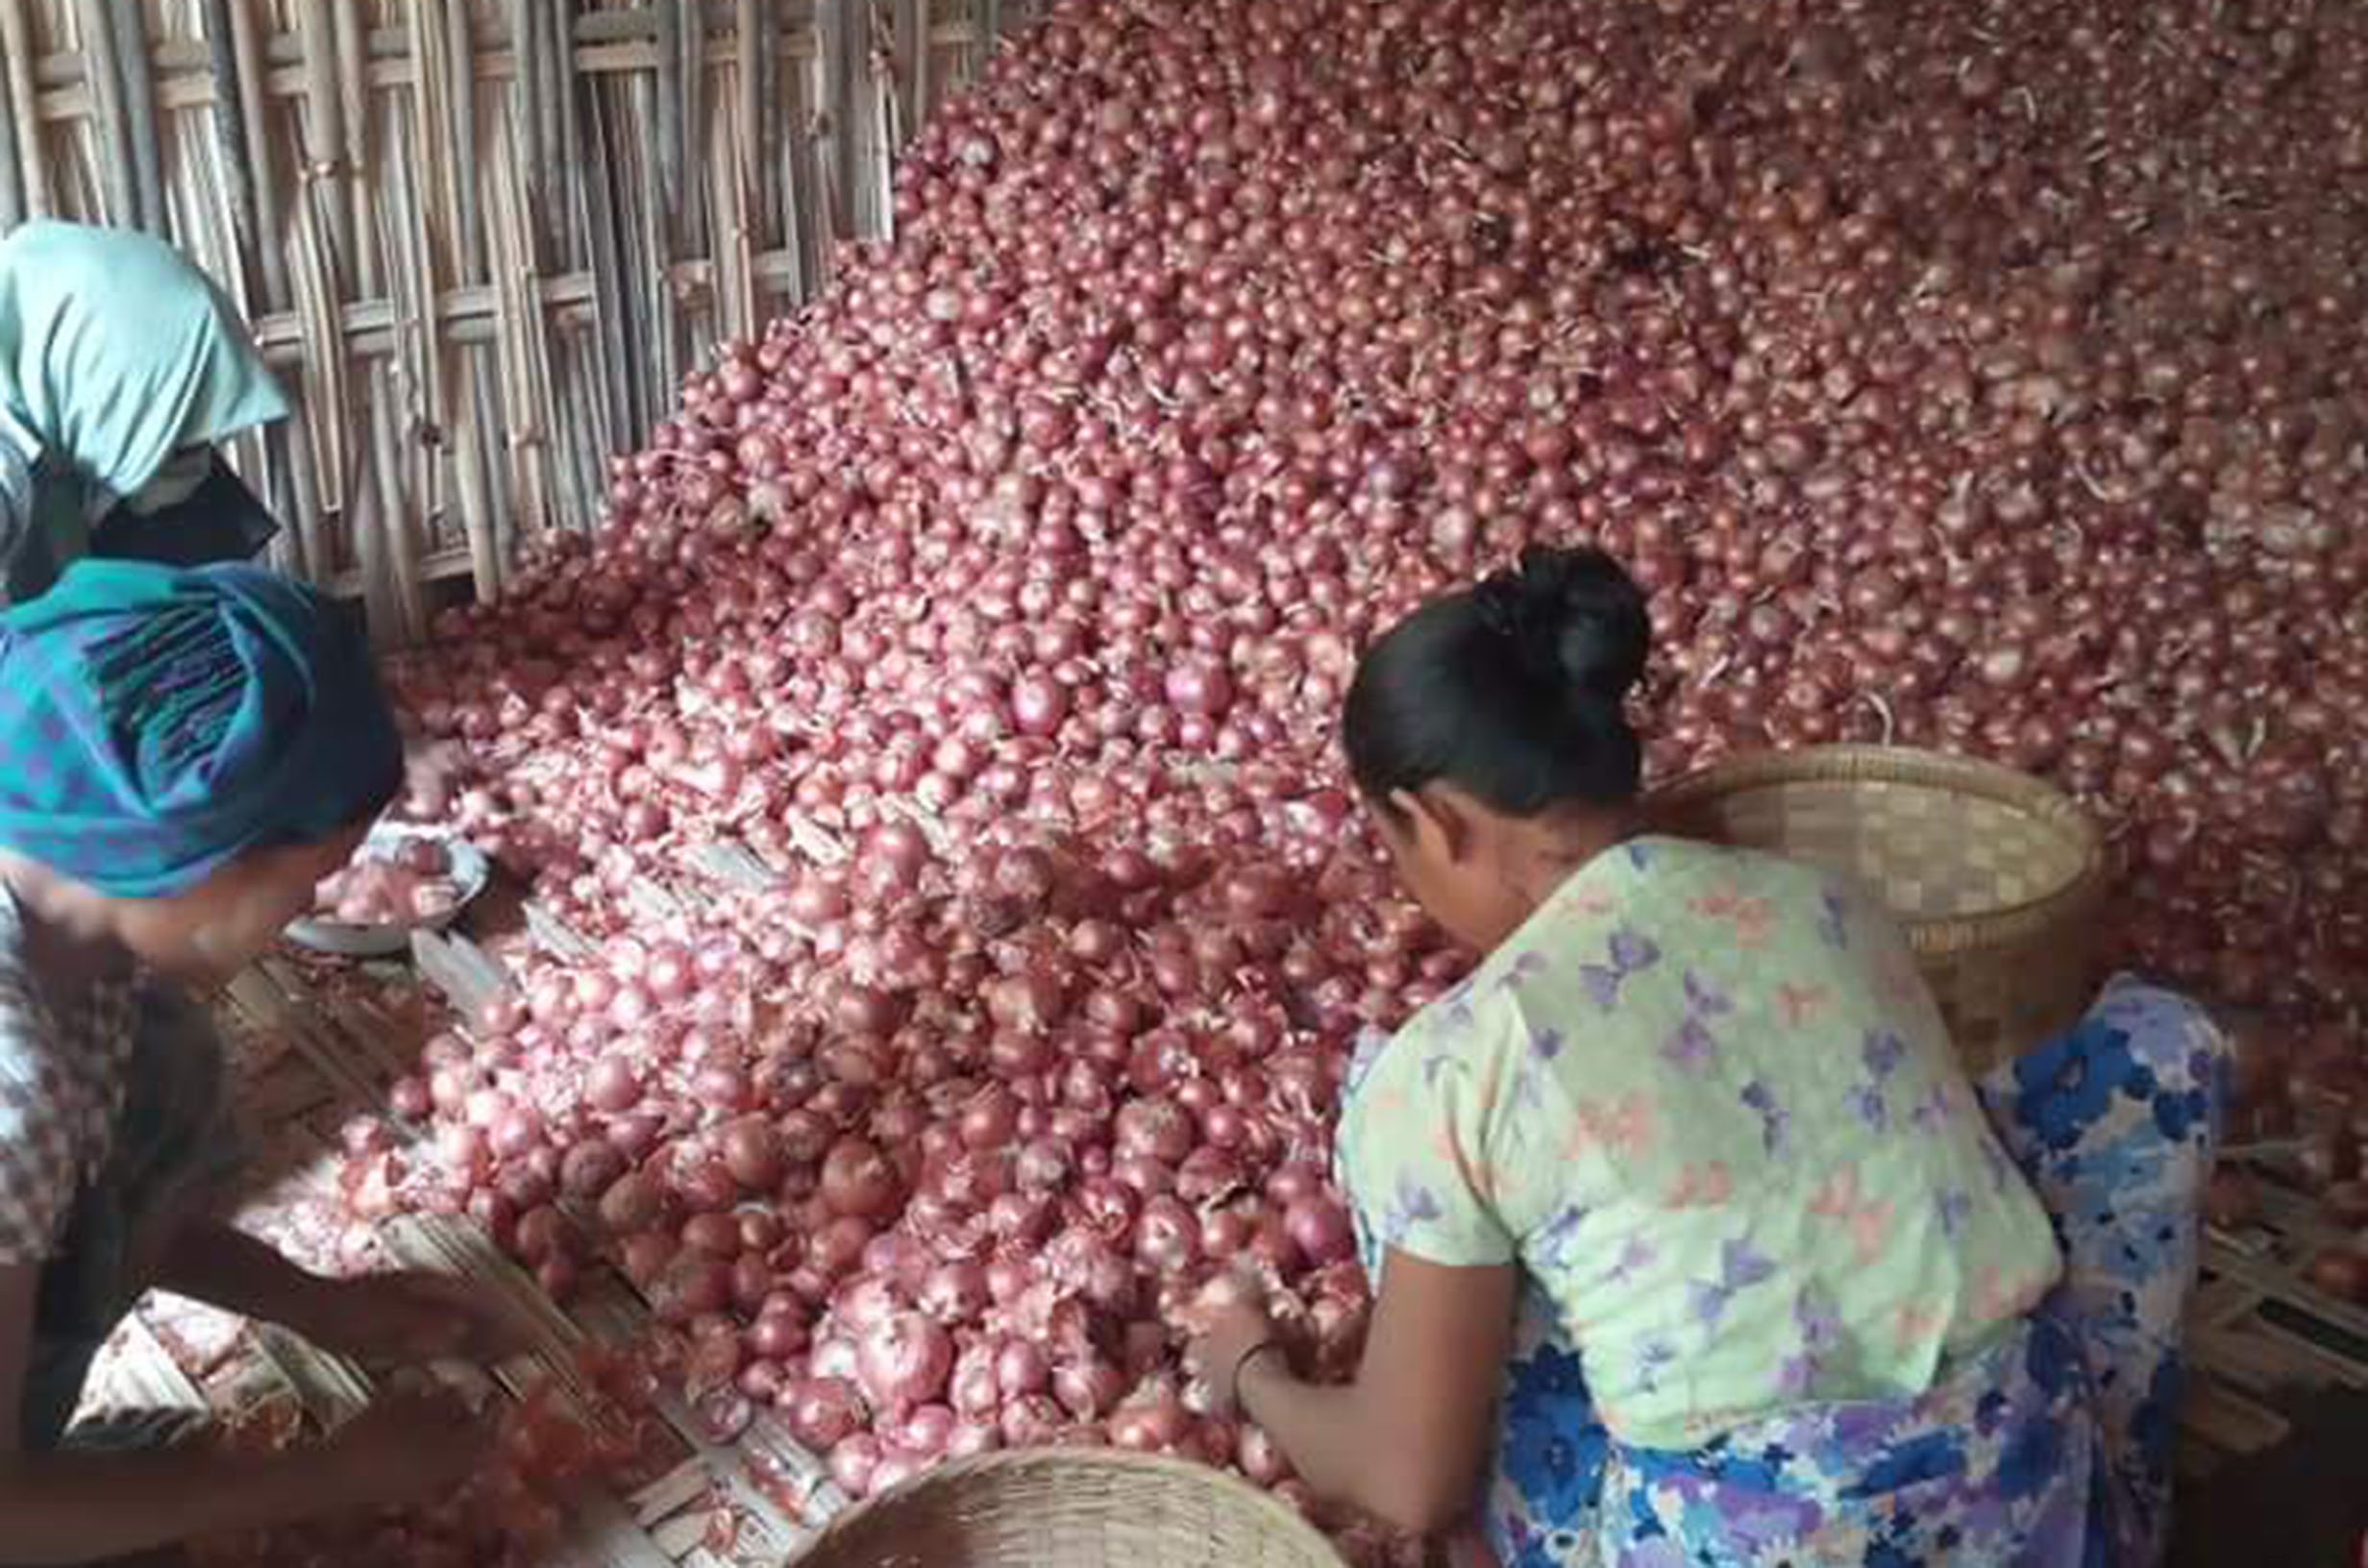 Local onion growers are facing the difficulties with their onion cultivation businesses due to the significant decline of foreign demand during the outbreak